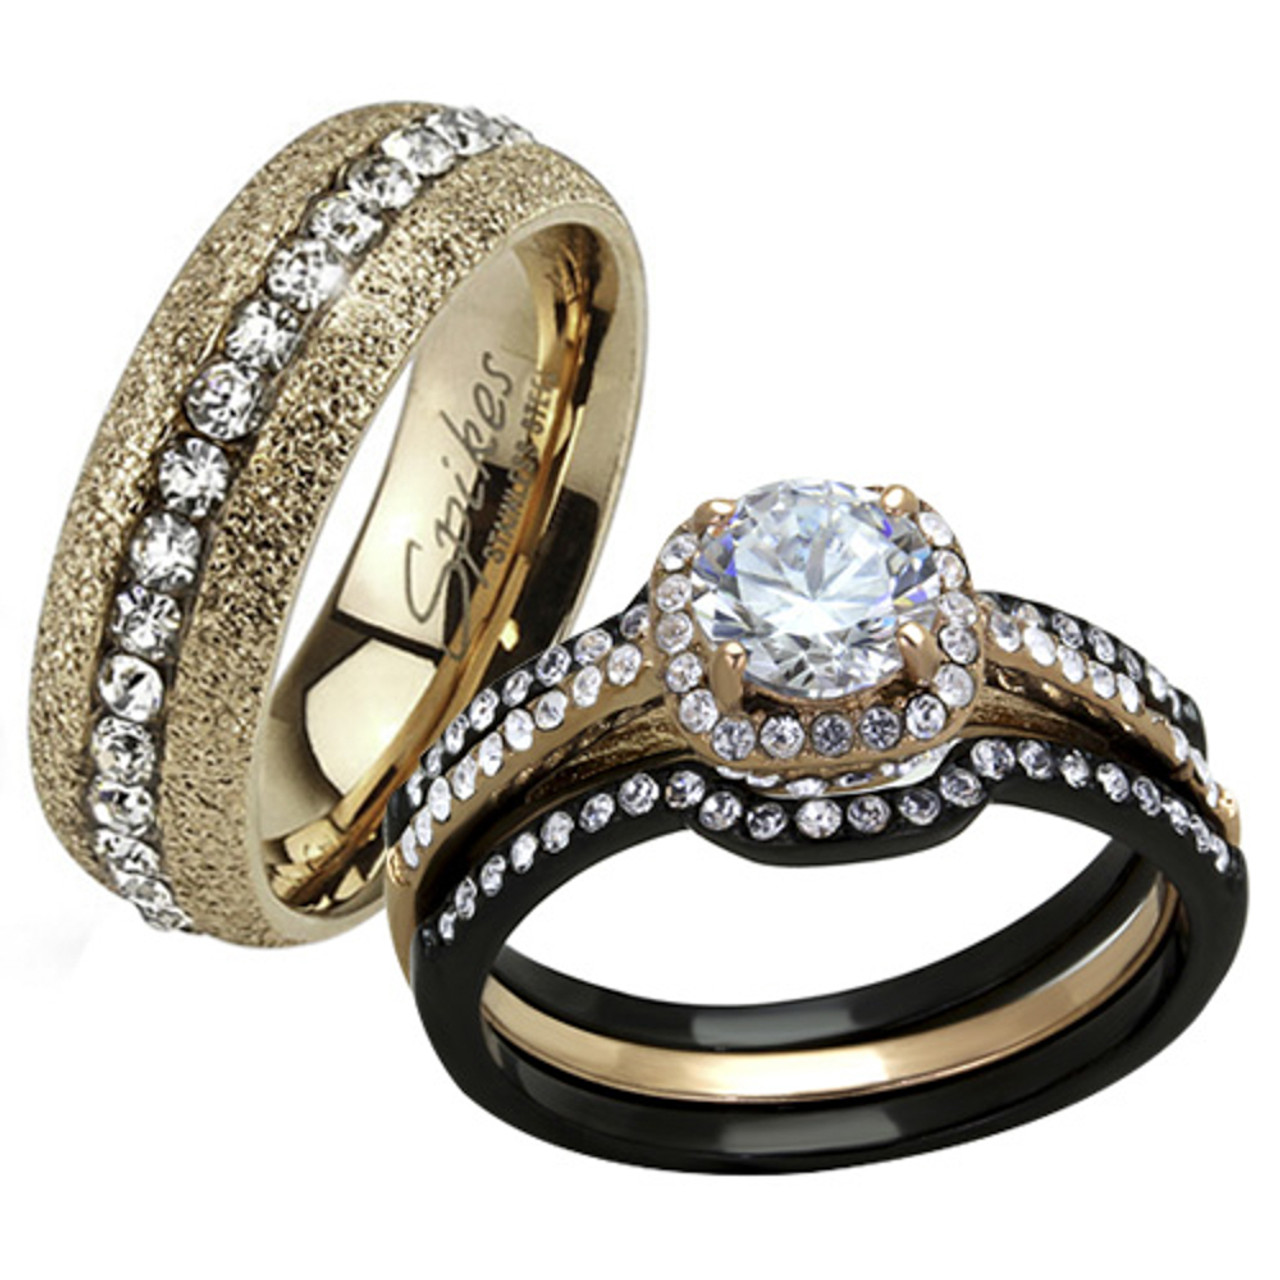 St2020 Rh78486 Stainless Steel His Hers 4 Pc Black Rose Gold Wedding Engagement Ring Band Set Marimorjewelry Com